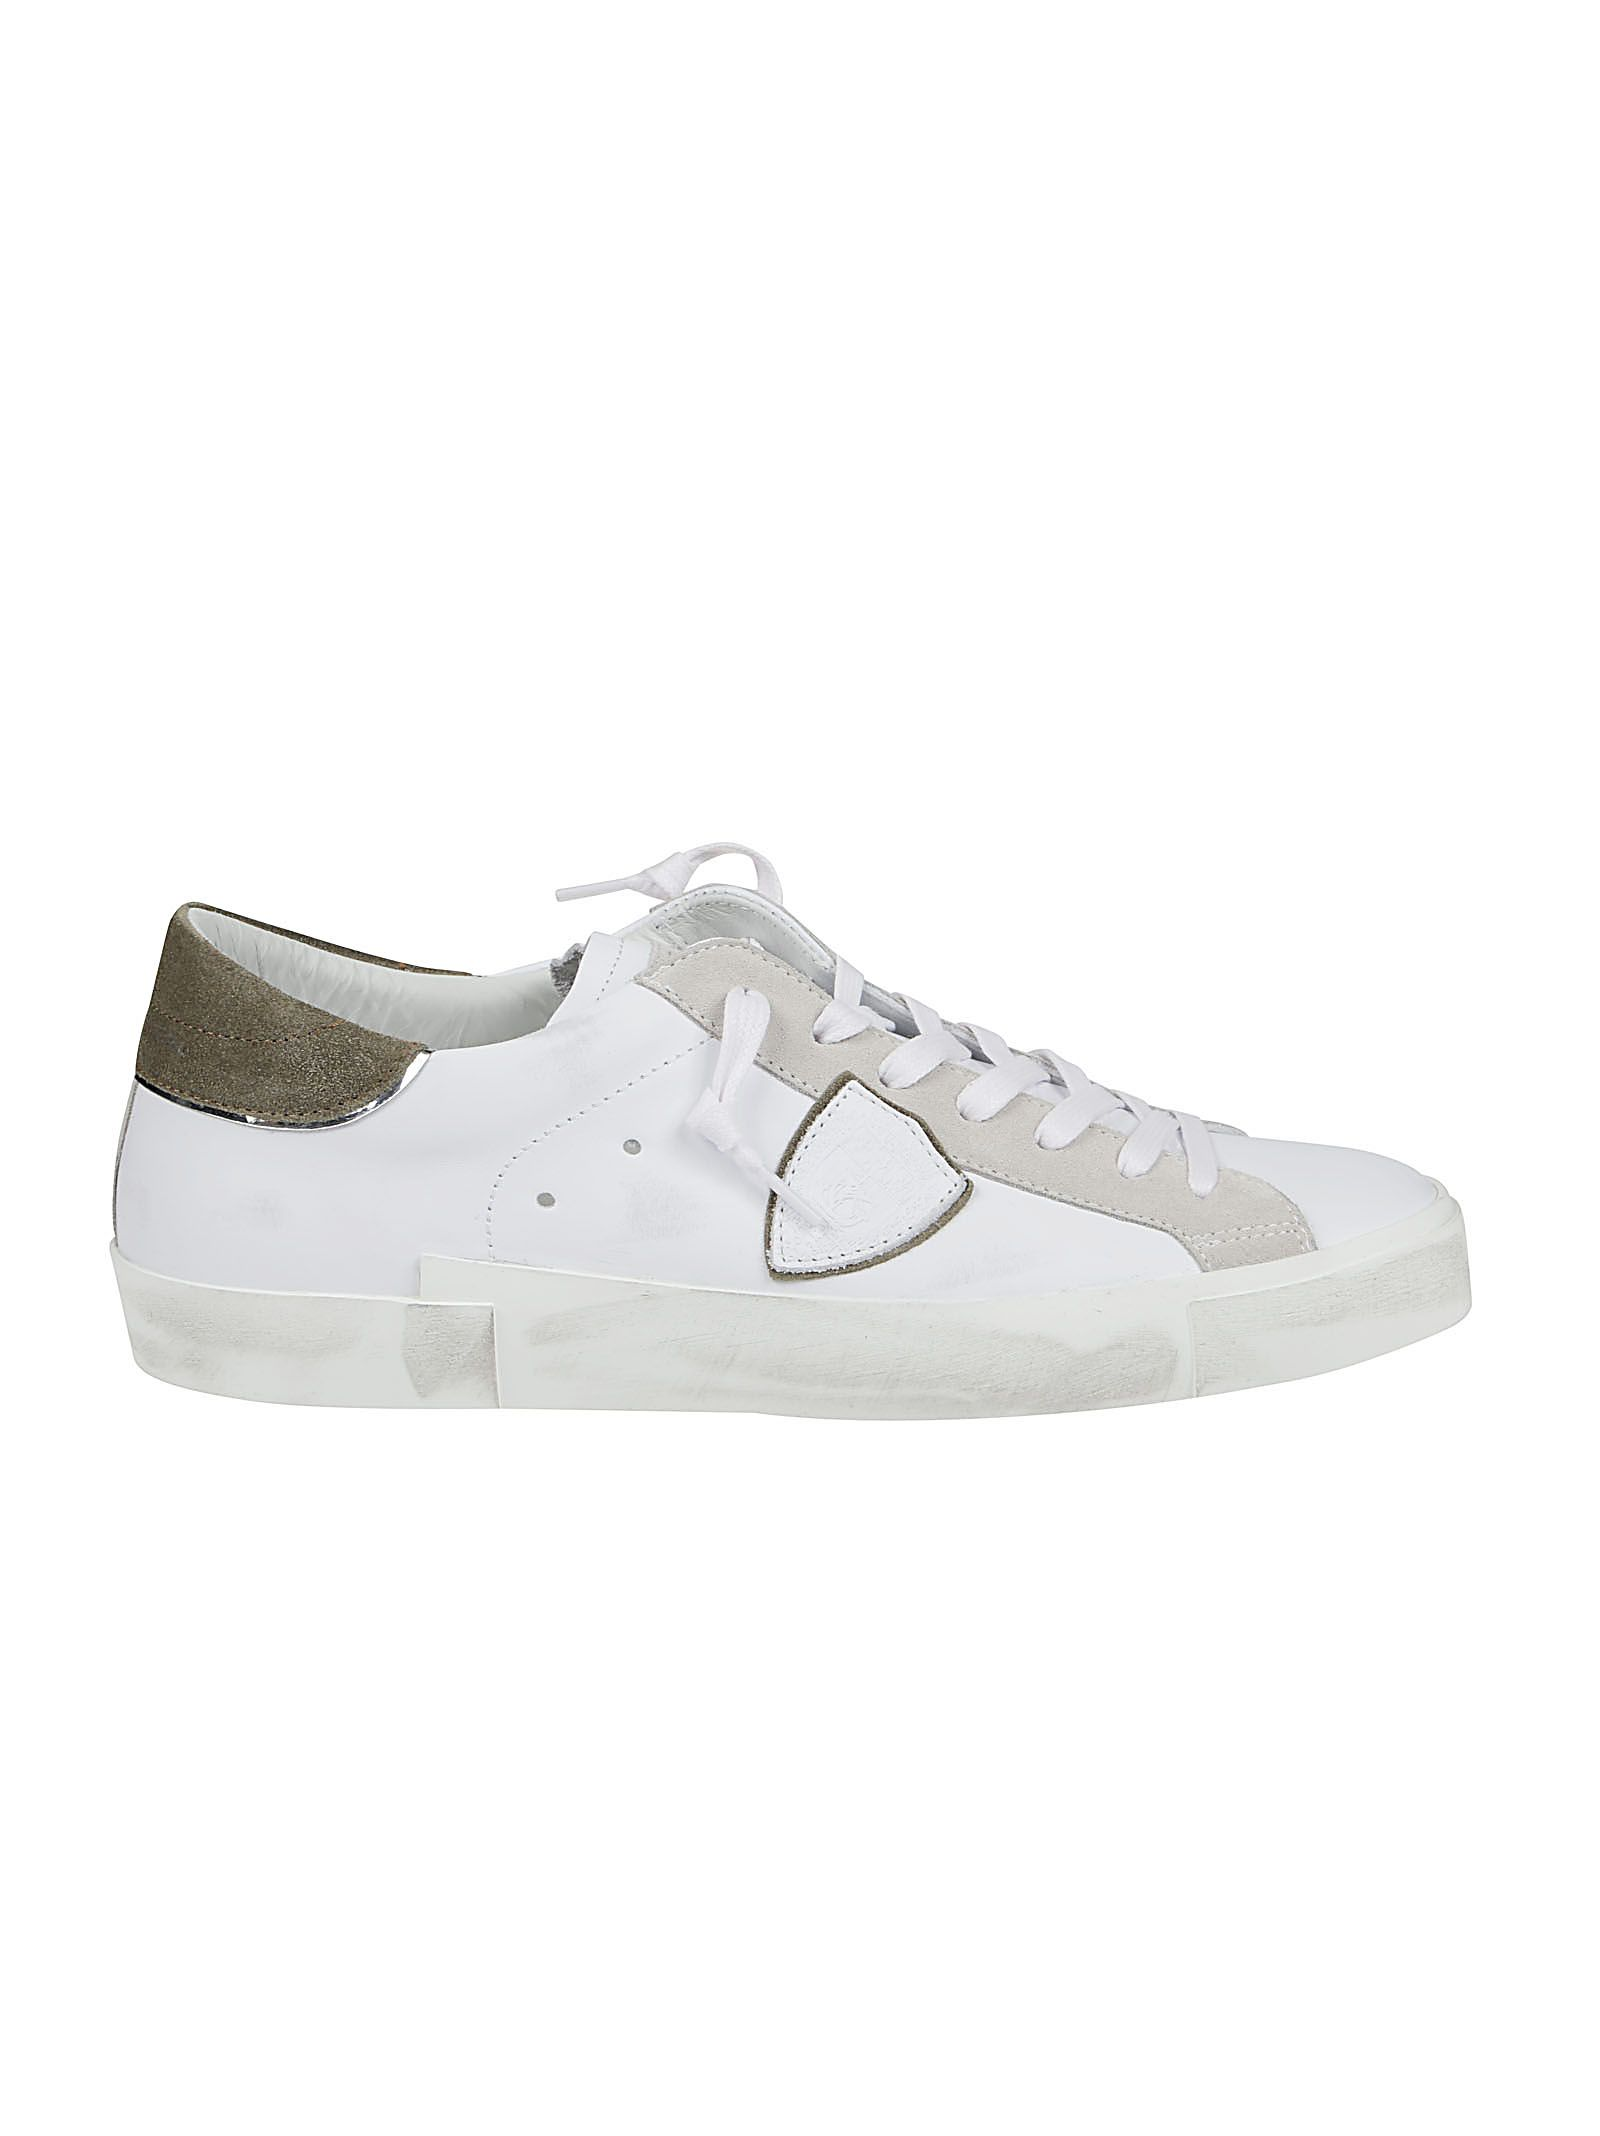 Philippe Model Leathers PHILIPPE MODEL MEN'S PRLUVX20 WHITE OTHER MATERIALS SNEAKERS